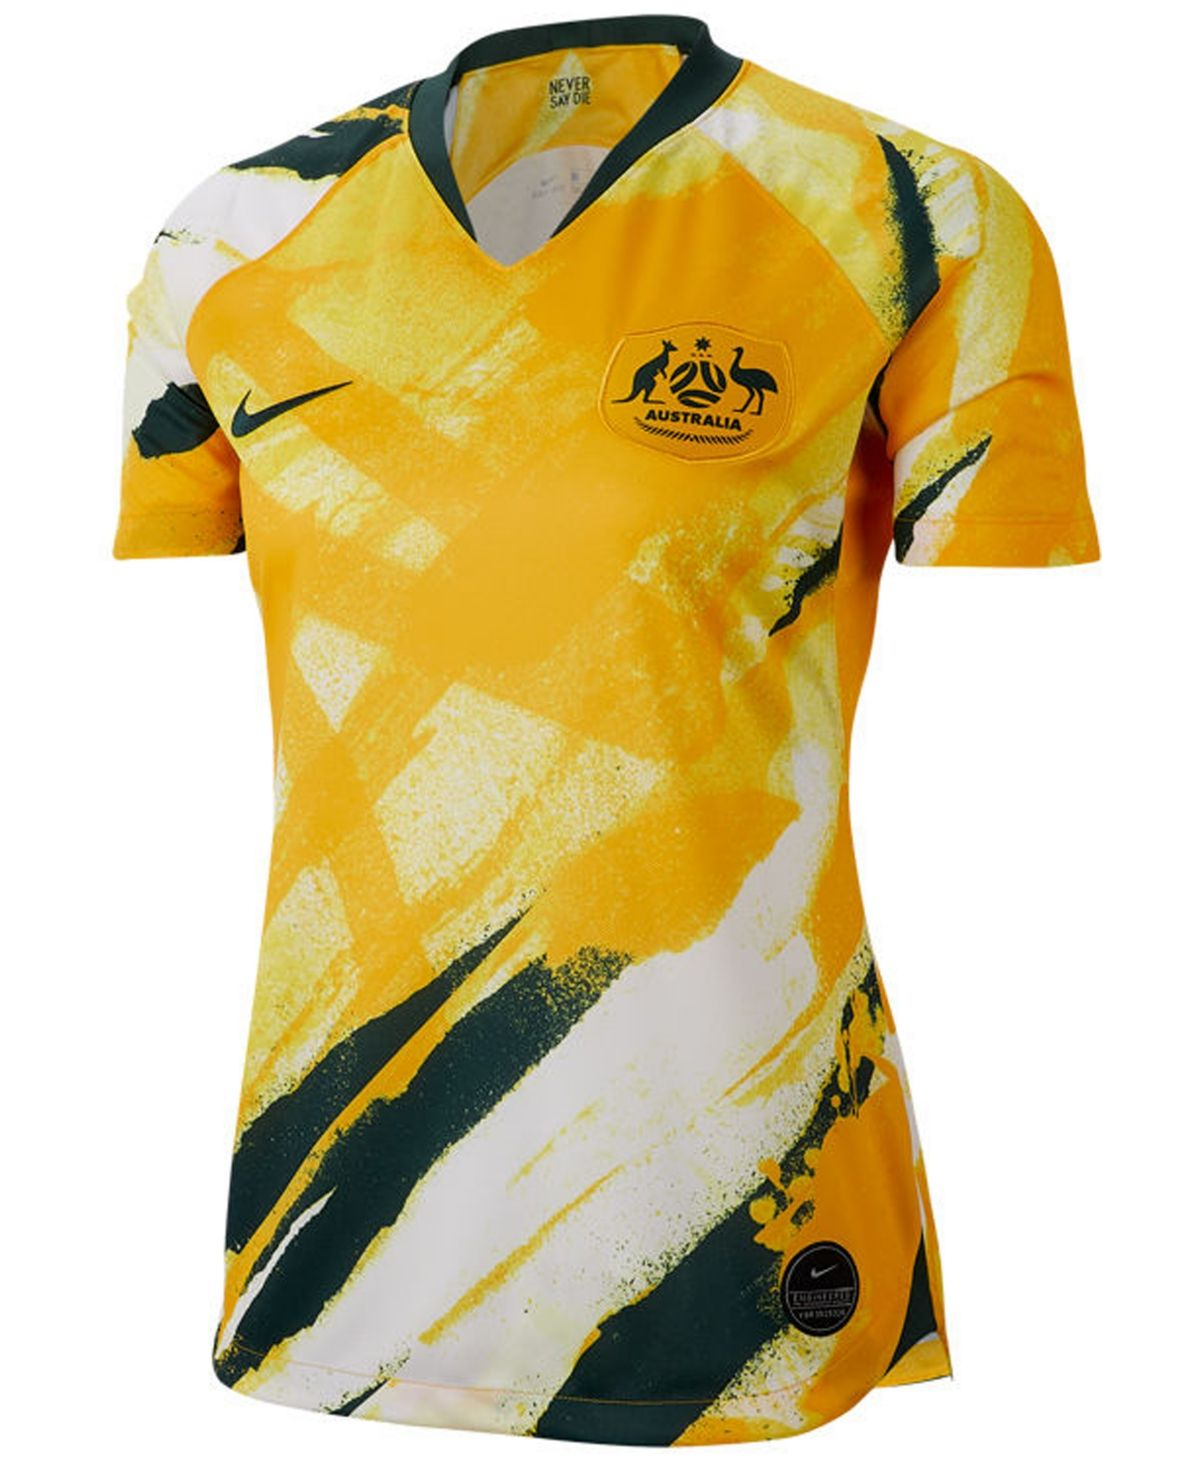 Nike Women S Australia National Team Women S World Cup Home Stadium Jersey White Gold Green Soccer Shirts World Cup Jerseys Wholesale Shirts